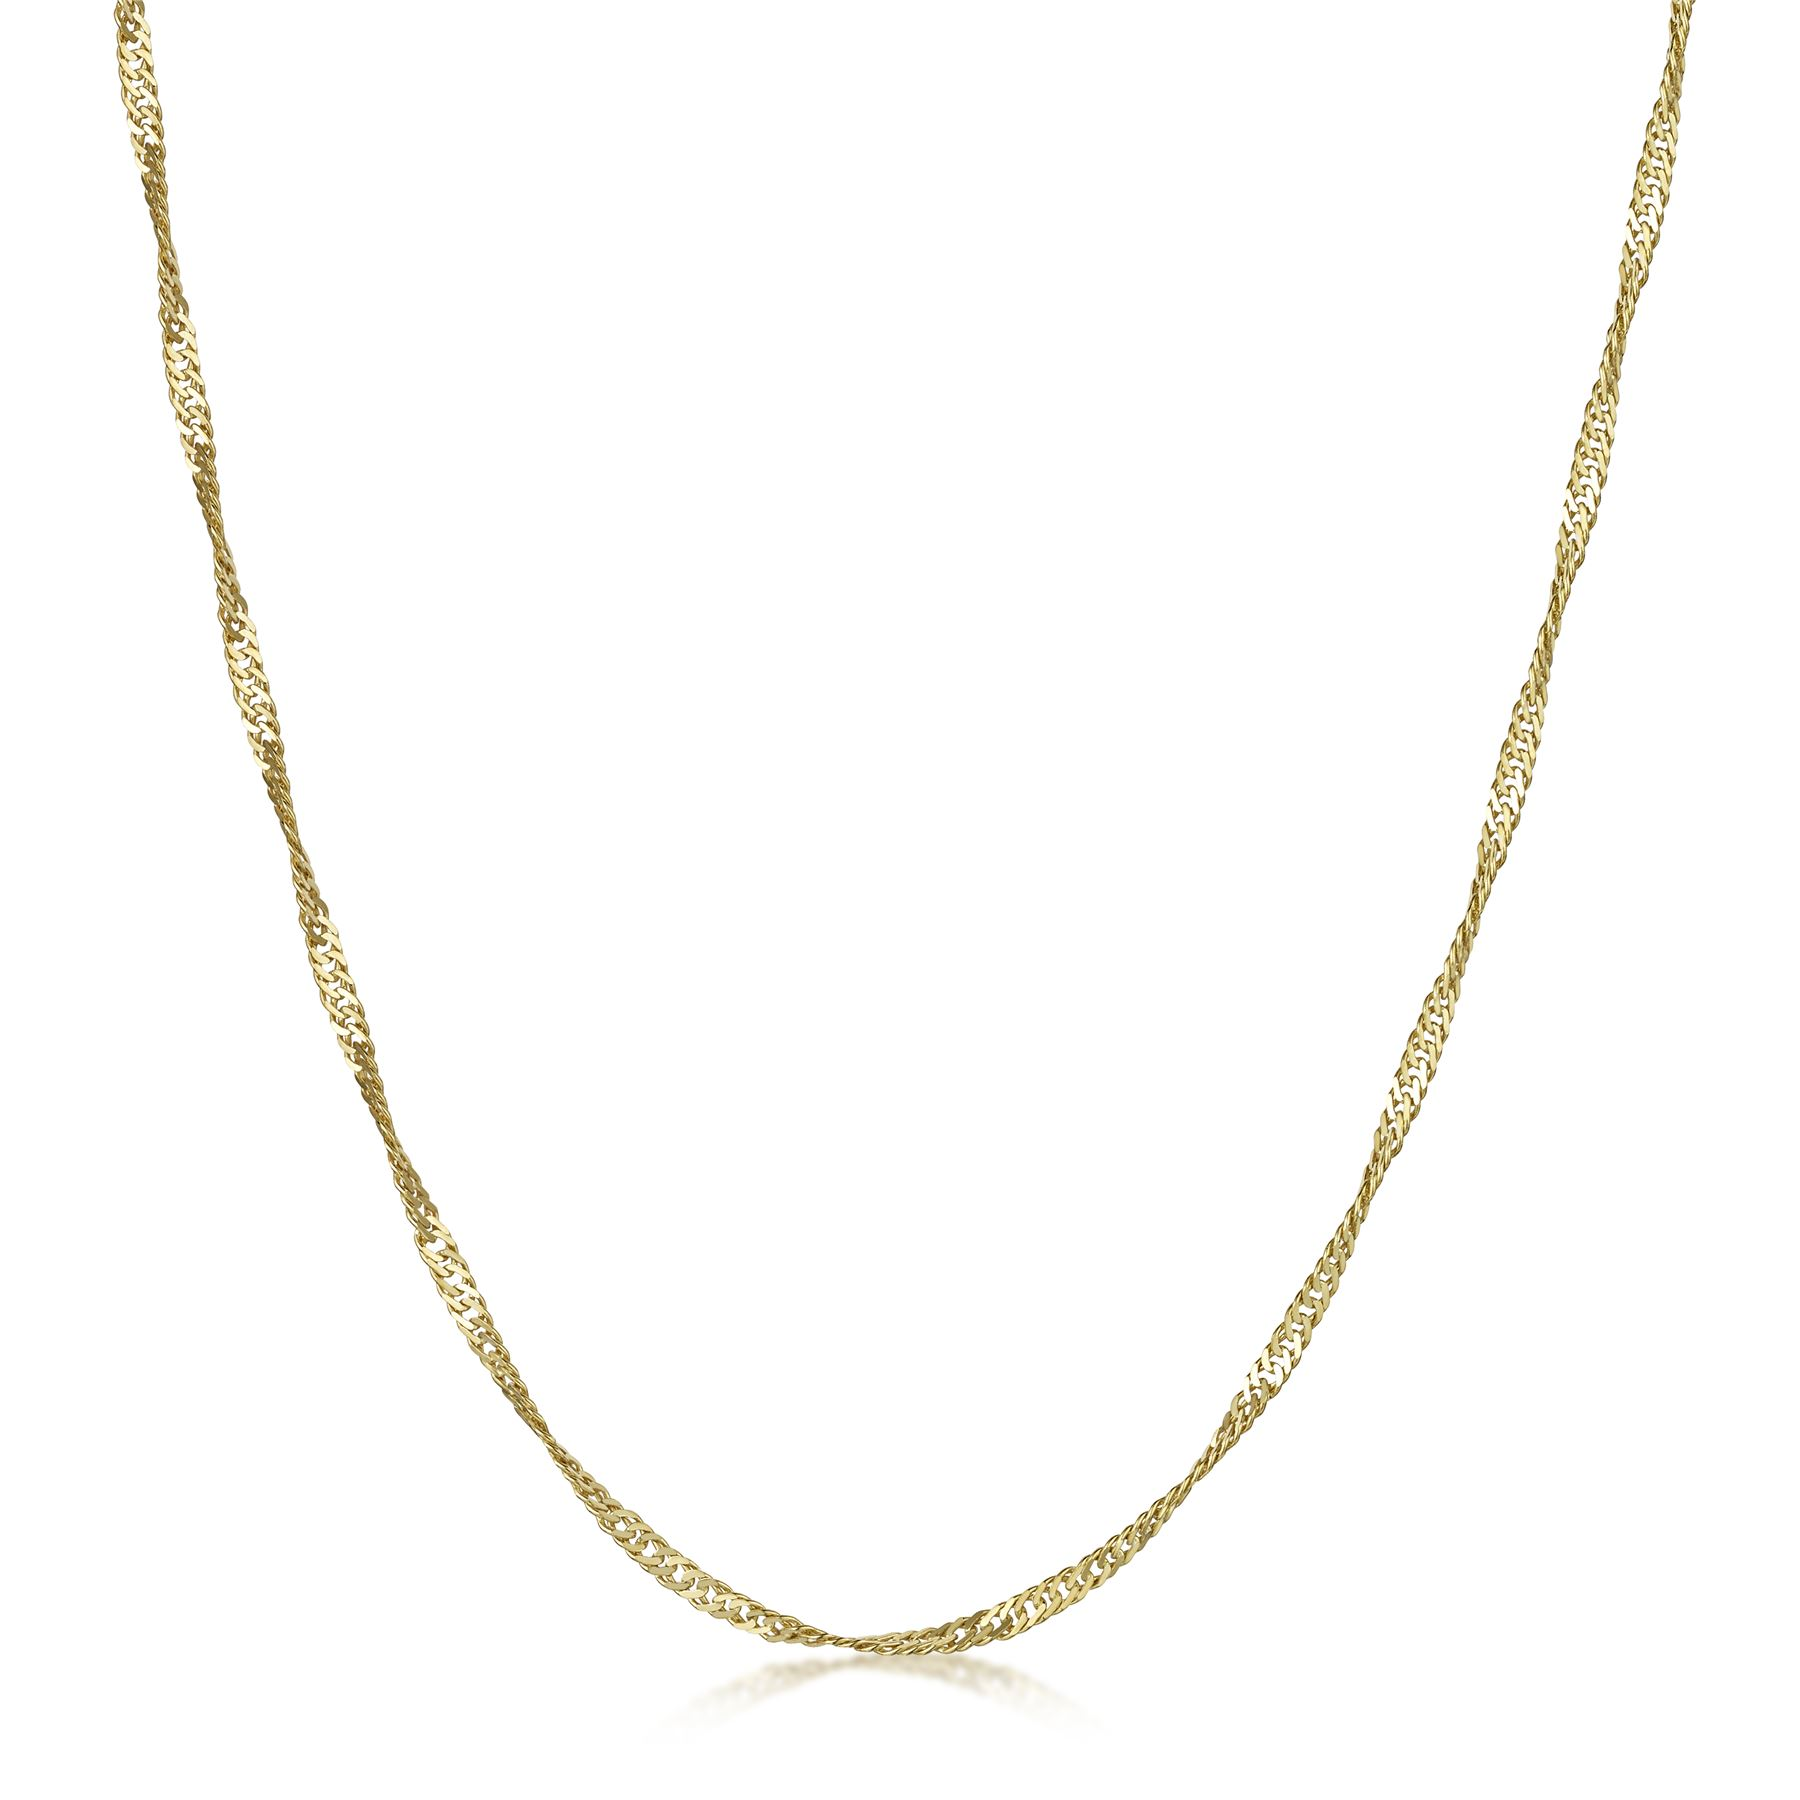 Amberta-Genuine-Gold-Plated-on-Real-925-Sterling-Silver-Necklace-Chain-Italy miniatura 36